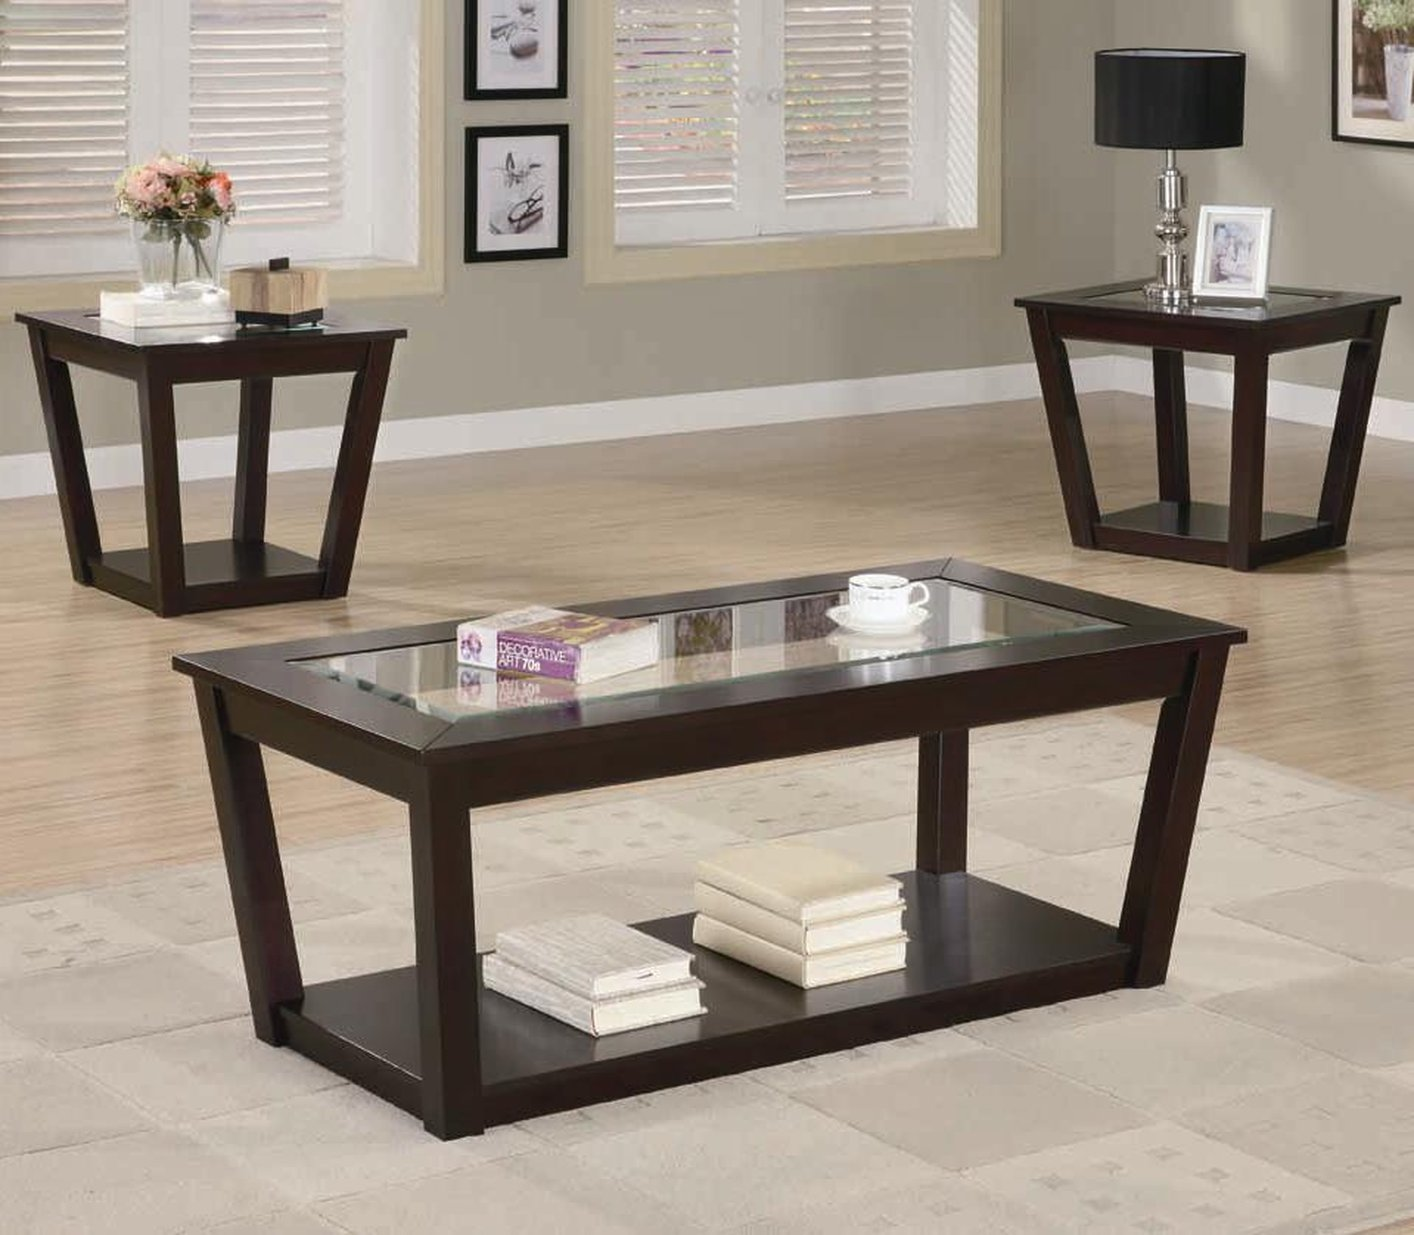 brown wood coffee table set steal sofa furniture los fenmore glass end tables angeles patio covers gas pipe base kits best lamps tall white large sets cool nic universal kids